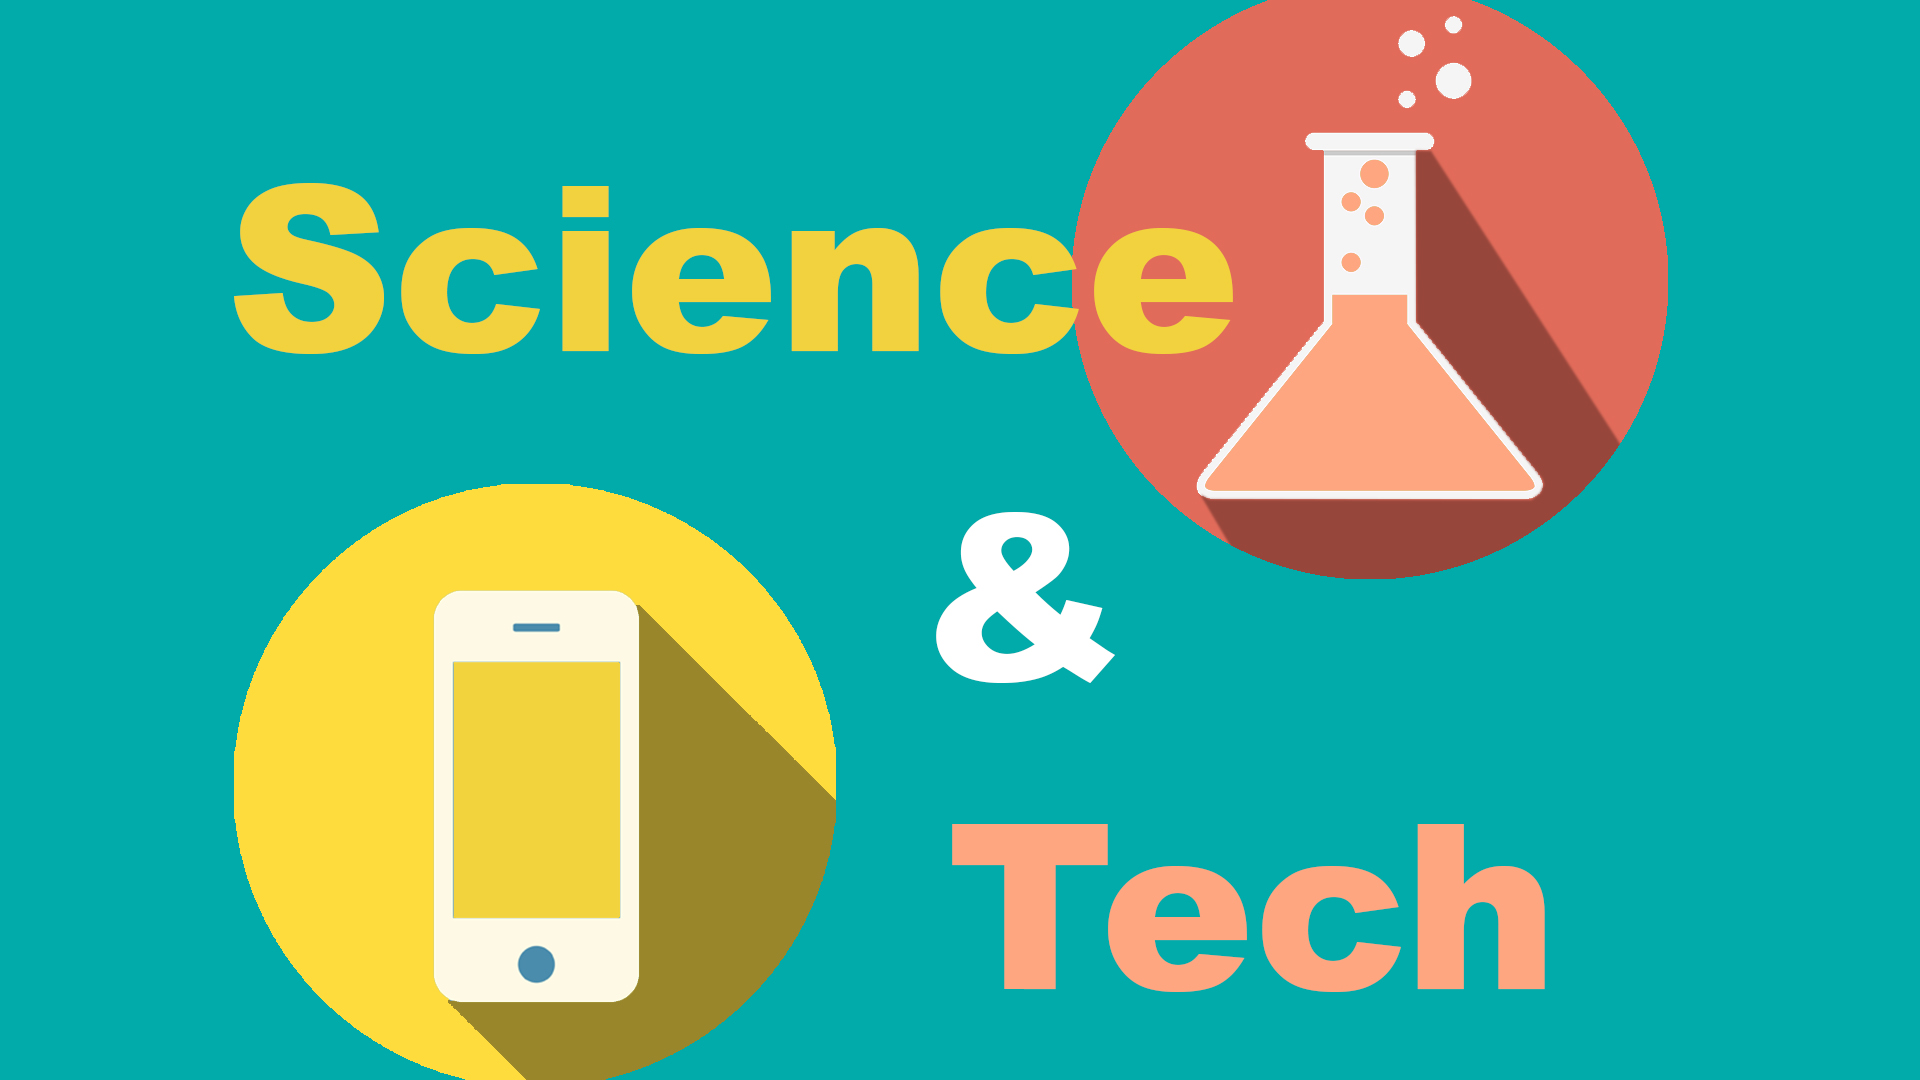 Science & Technology - Articles